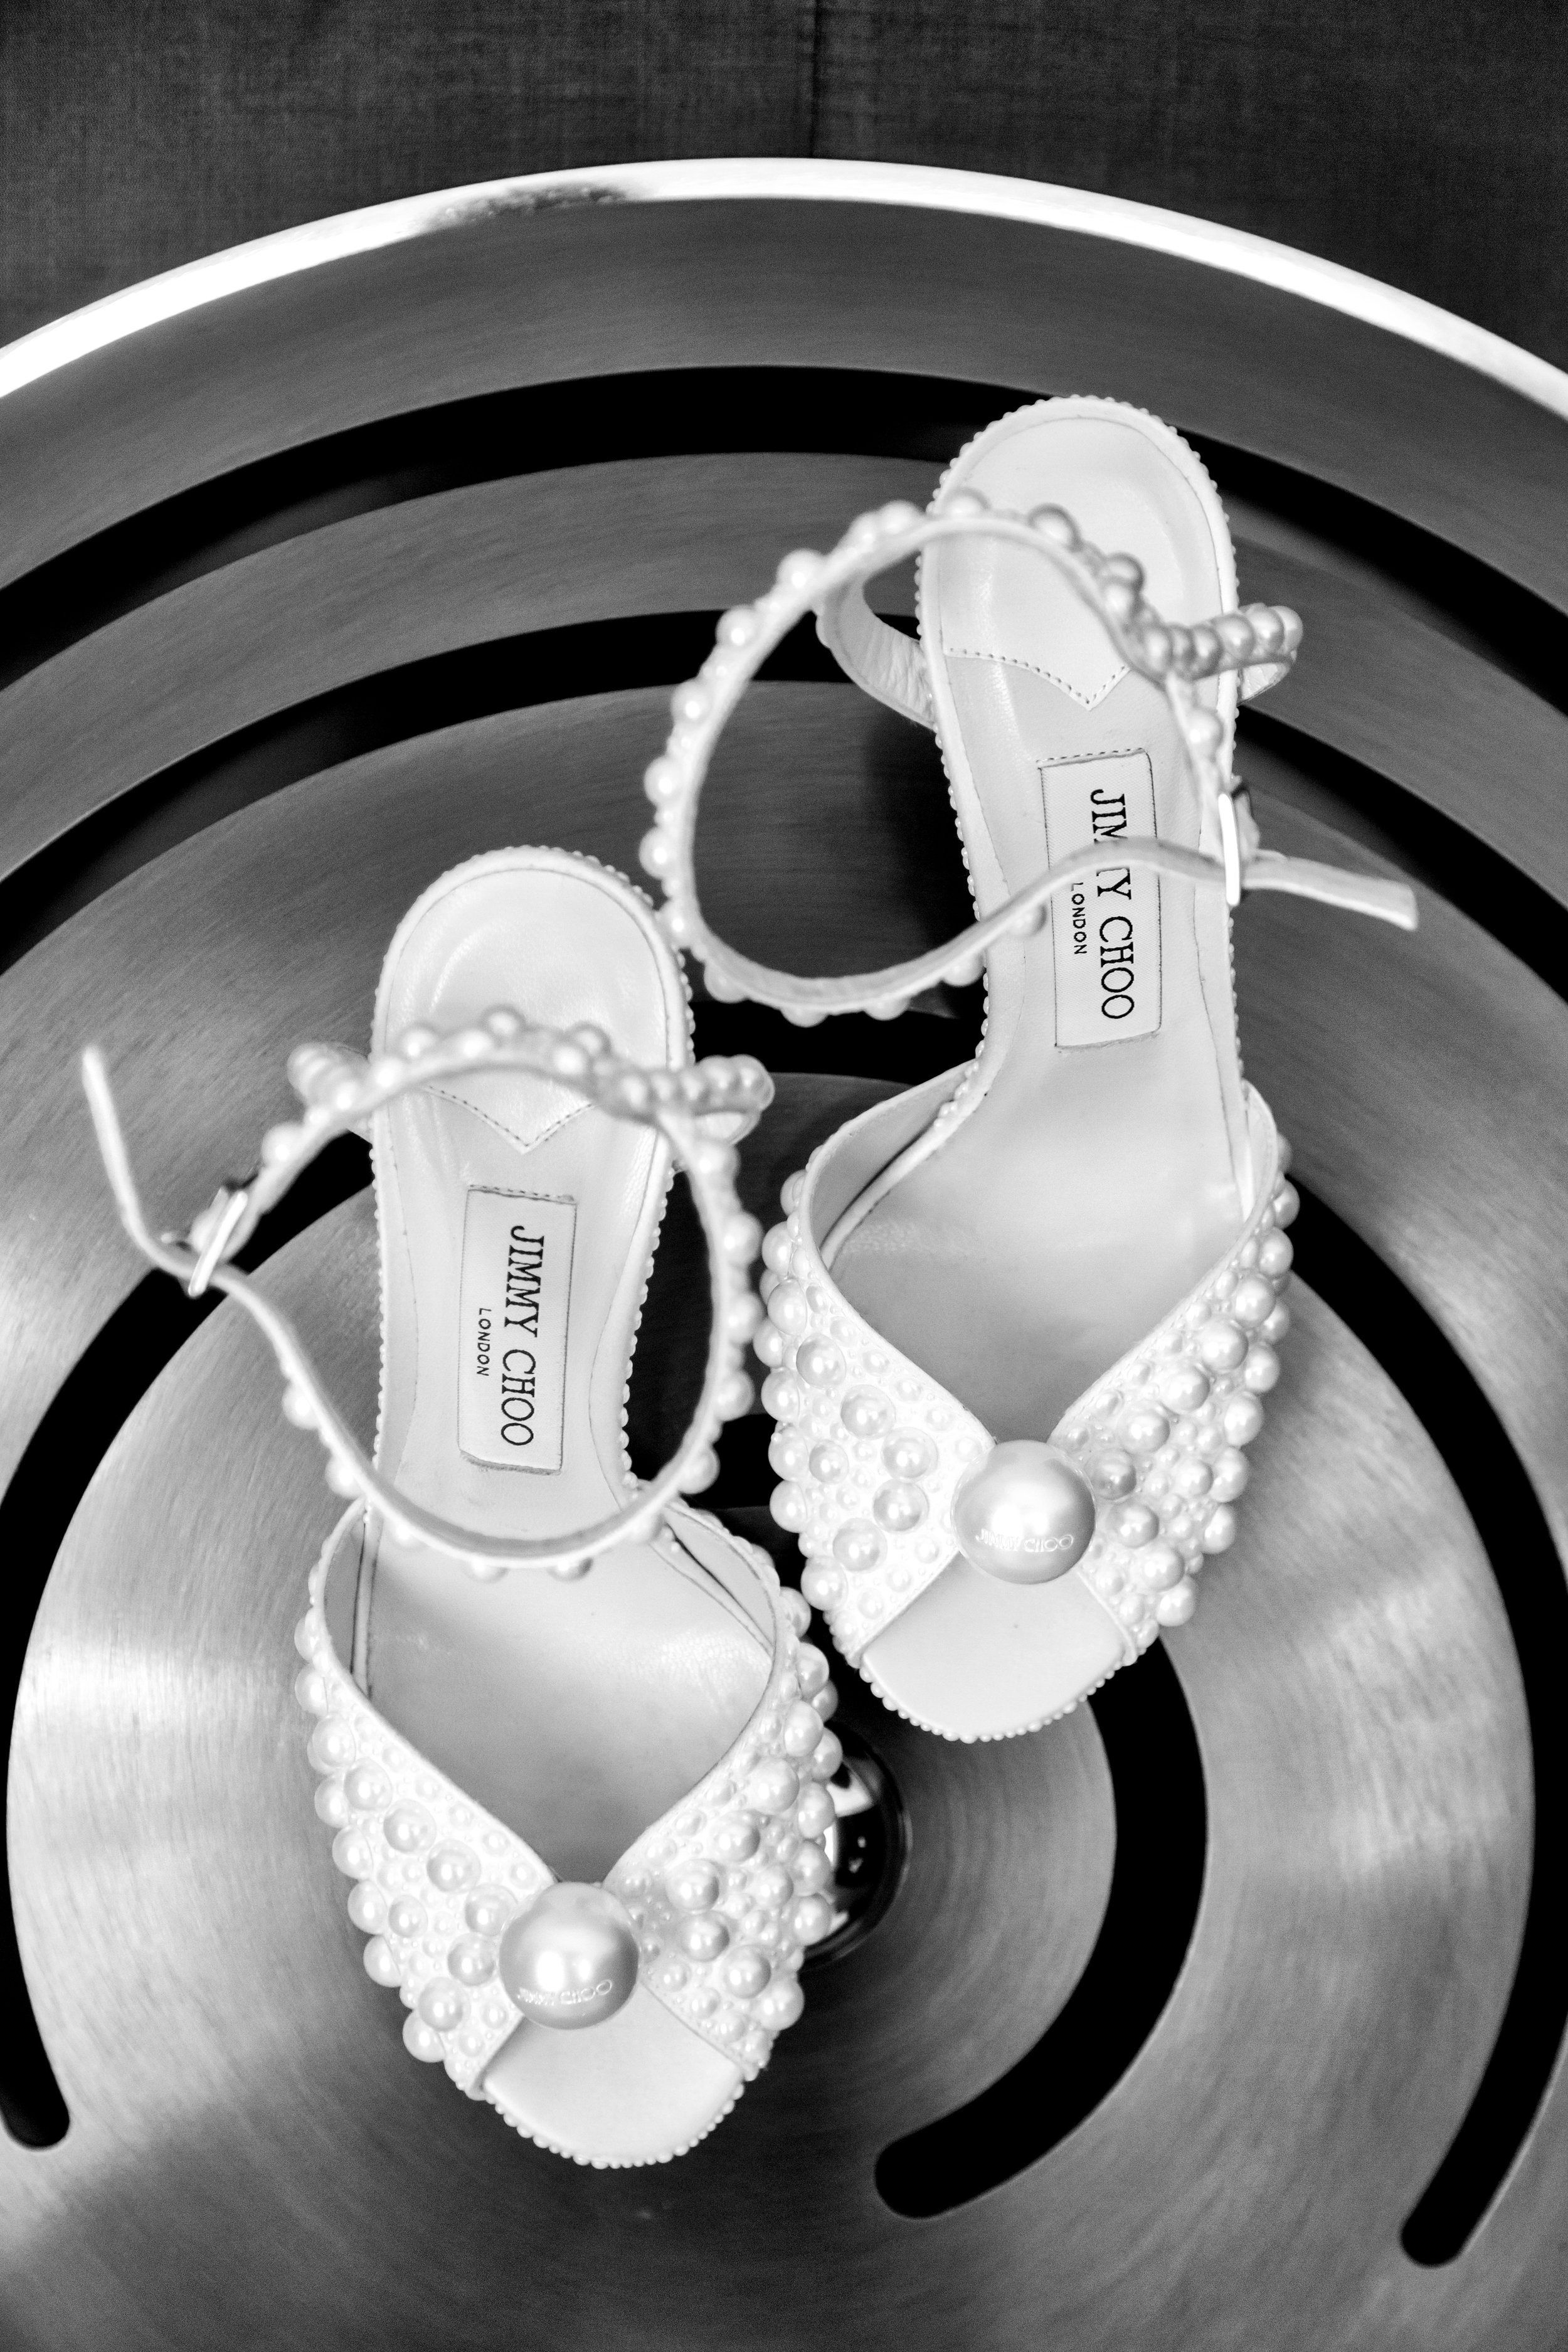 Jimmy Choo Bridal Shoes. Wedding Planning and Event Design by Andrea Eppolito www.andreaeppolitoevents.com. Photos by Adam Frazier.